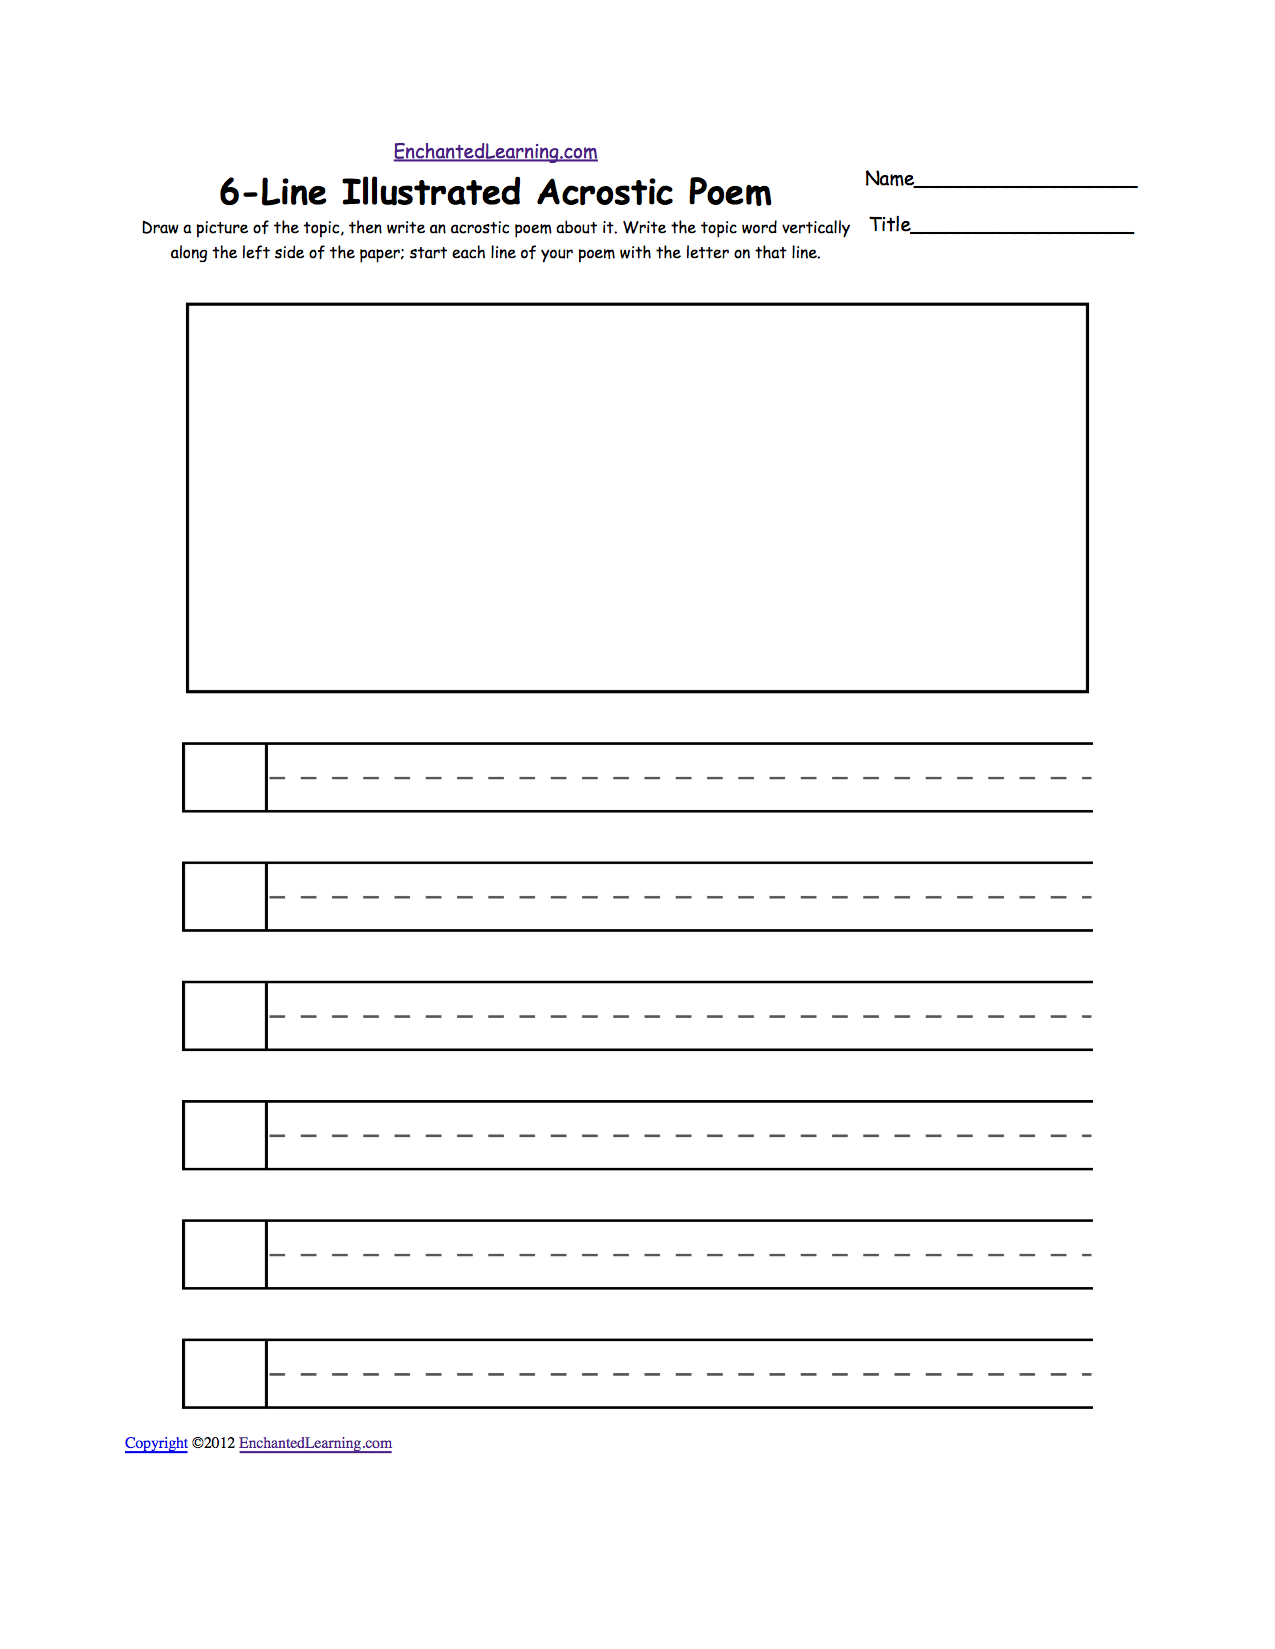 image relating to Poetry Worksheets Printable called Blank Illustrated Acrostic Poem Worksheets (Handwriting